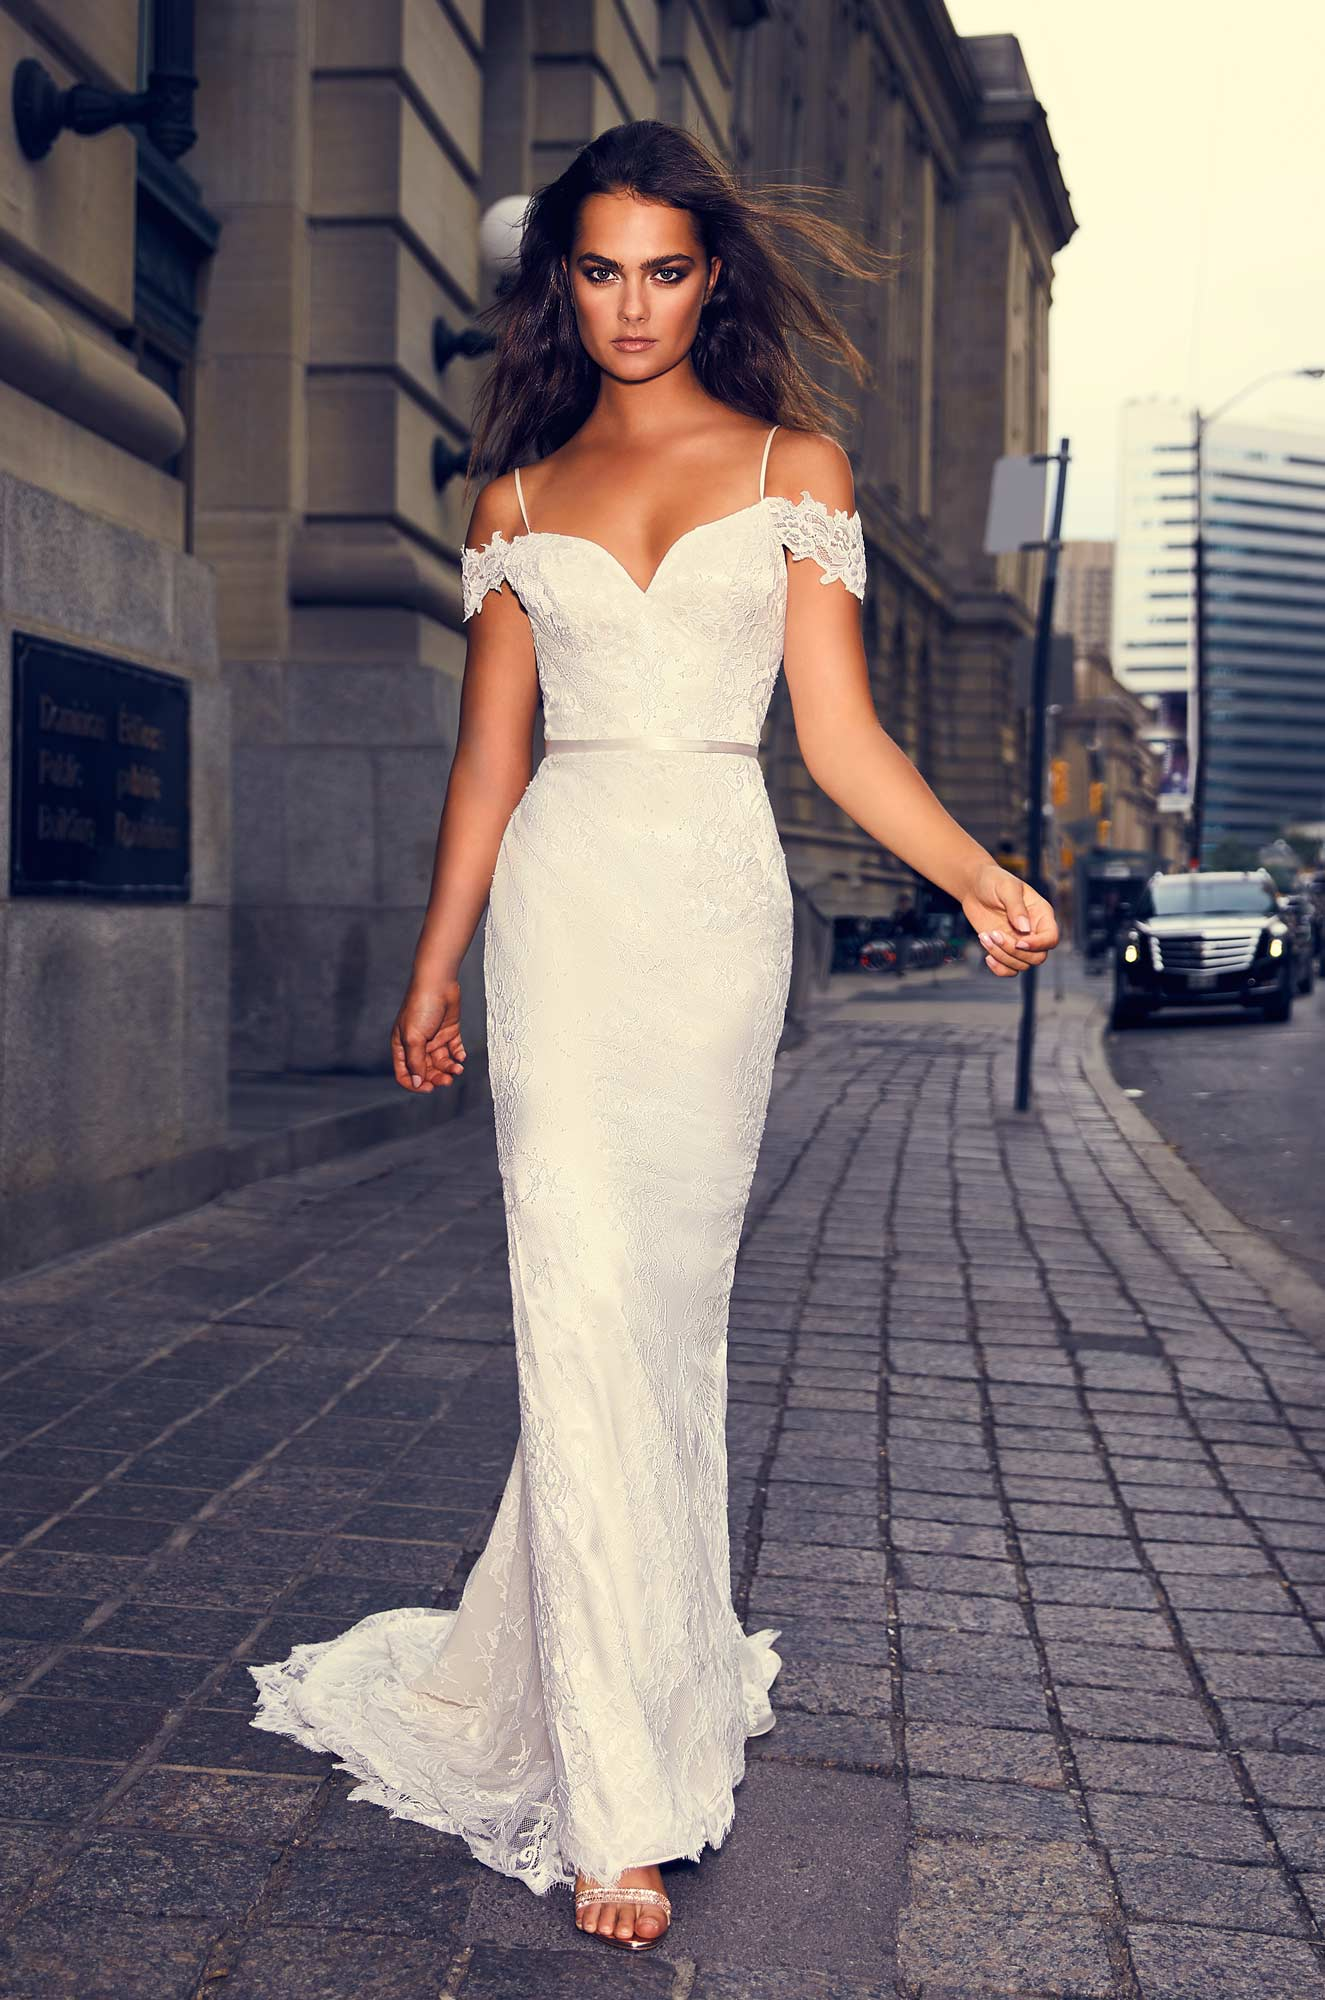 Mira Couture Paloma Blanca 4843 Wedding Dress Bridal Gown Chicago Boutique Front